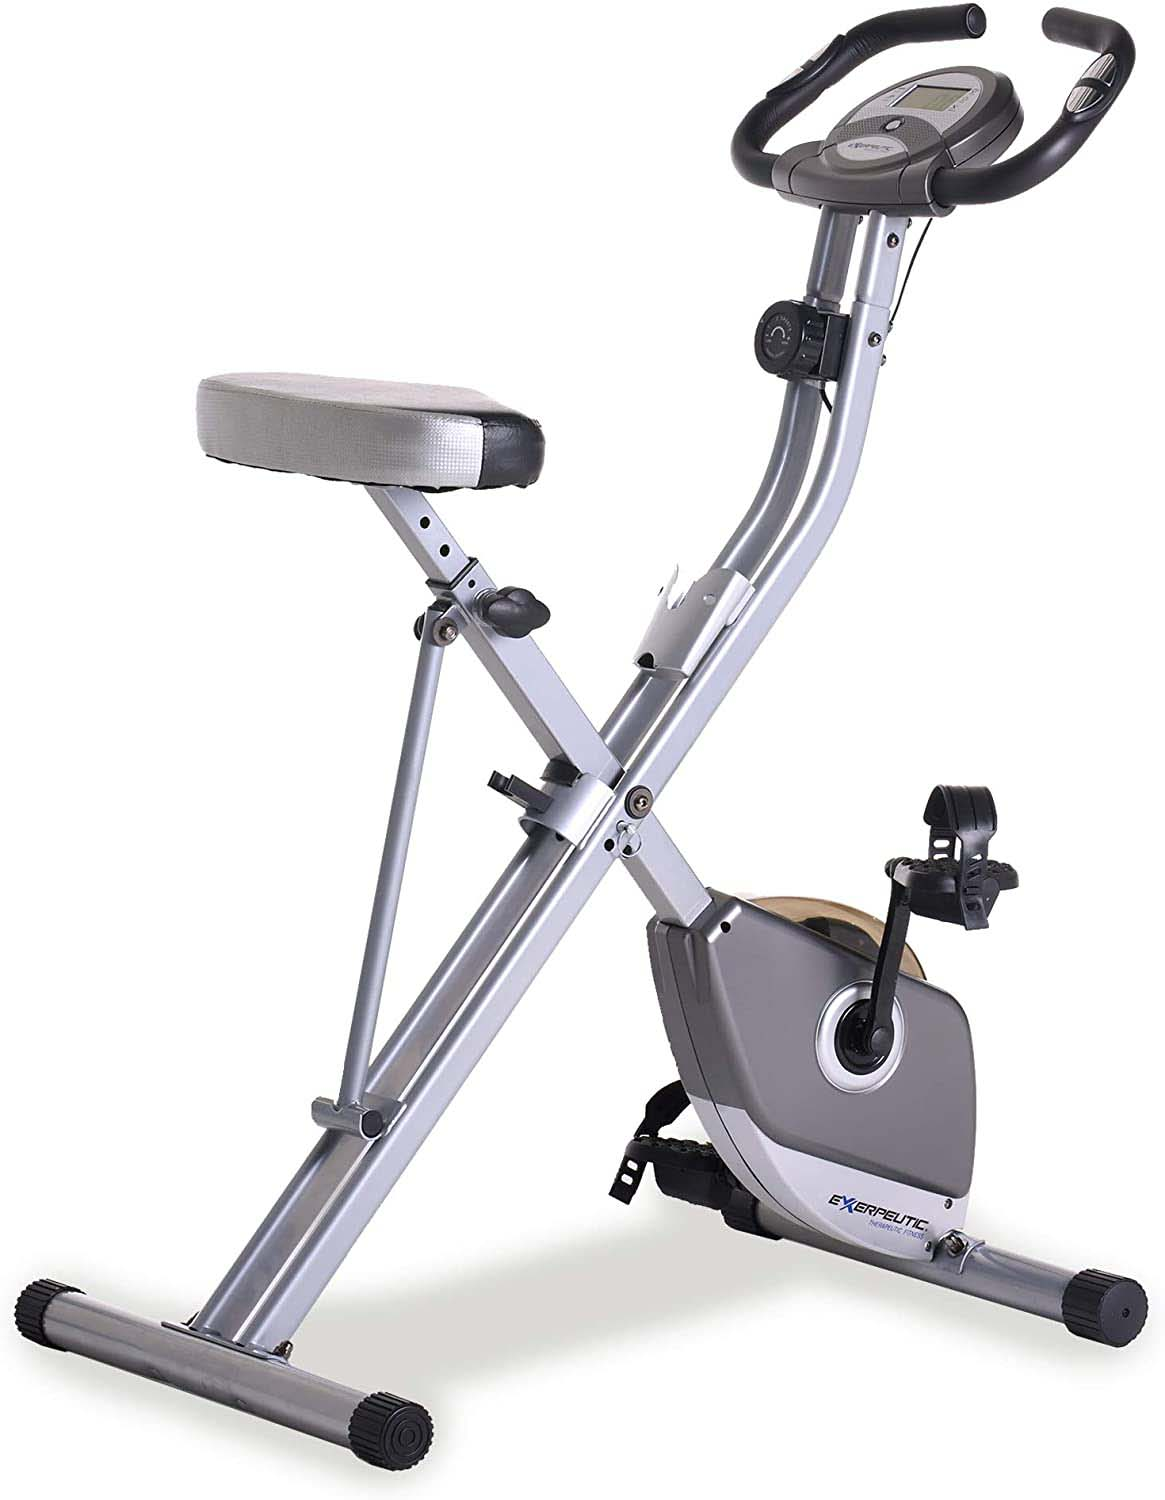 Best Stationary Bike For Small Space